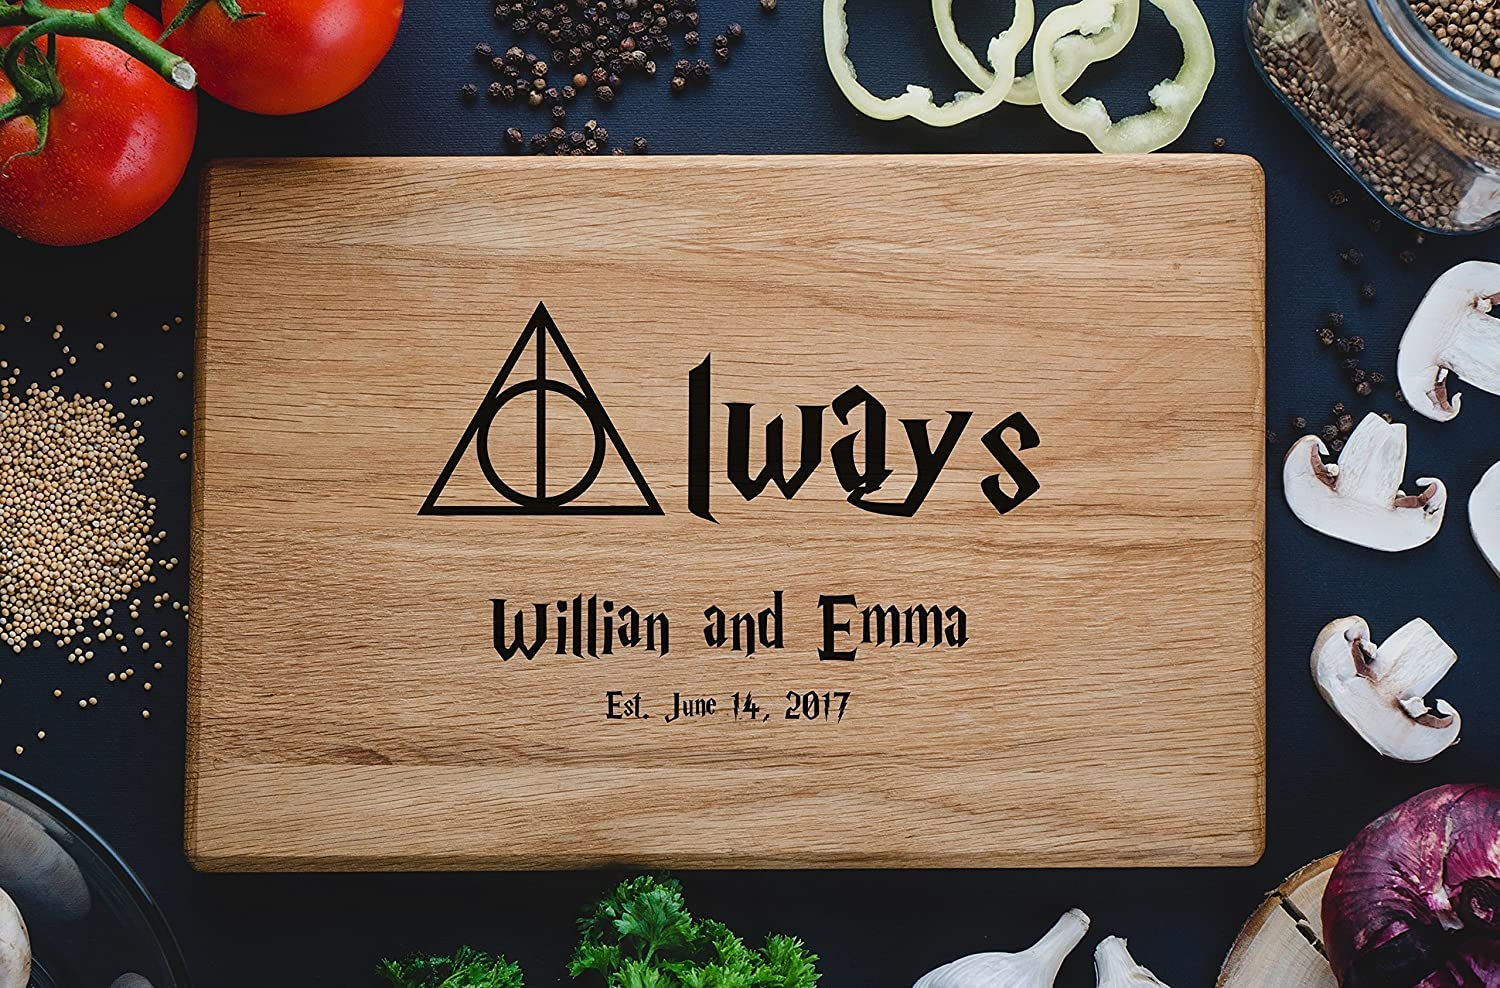 Always Custom Personalized Engraved Cutting Board family monogram Wedding Gift Anniversary Gifts, Housewarming Gift Birthday Gift Corporate Gift, Award harry06